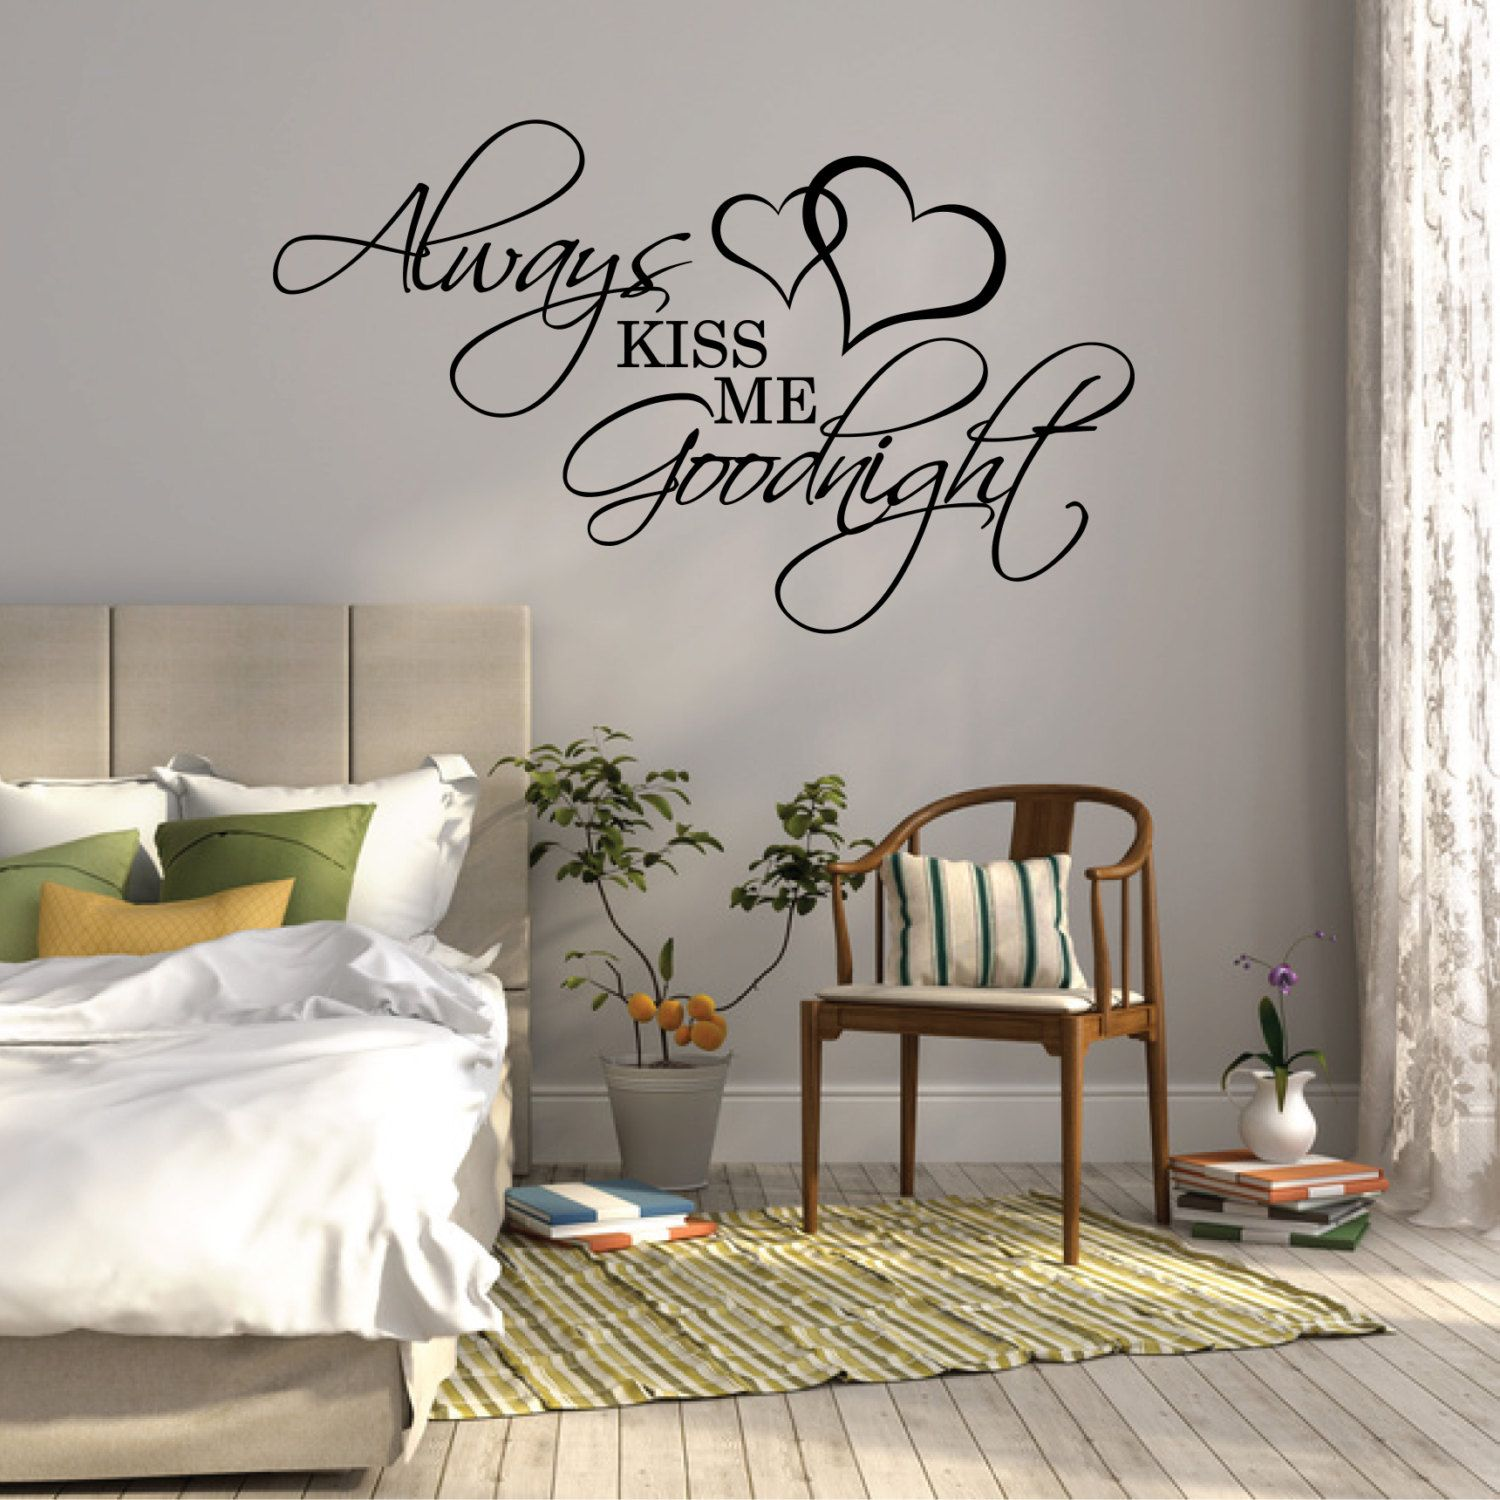 Wall sticker quote always kiss me goodnight over bed for Bedroom vinyl quotes